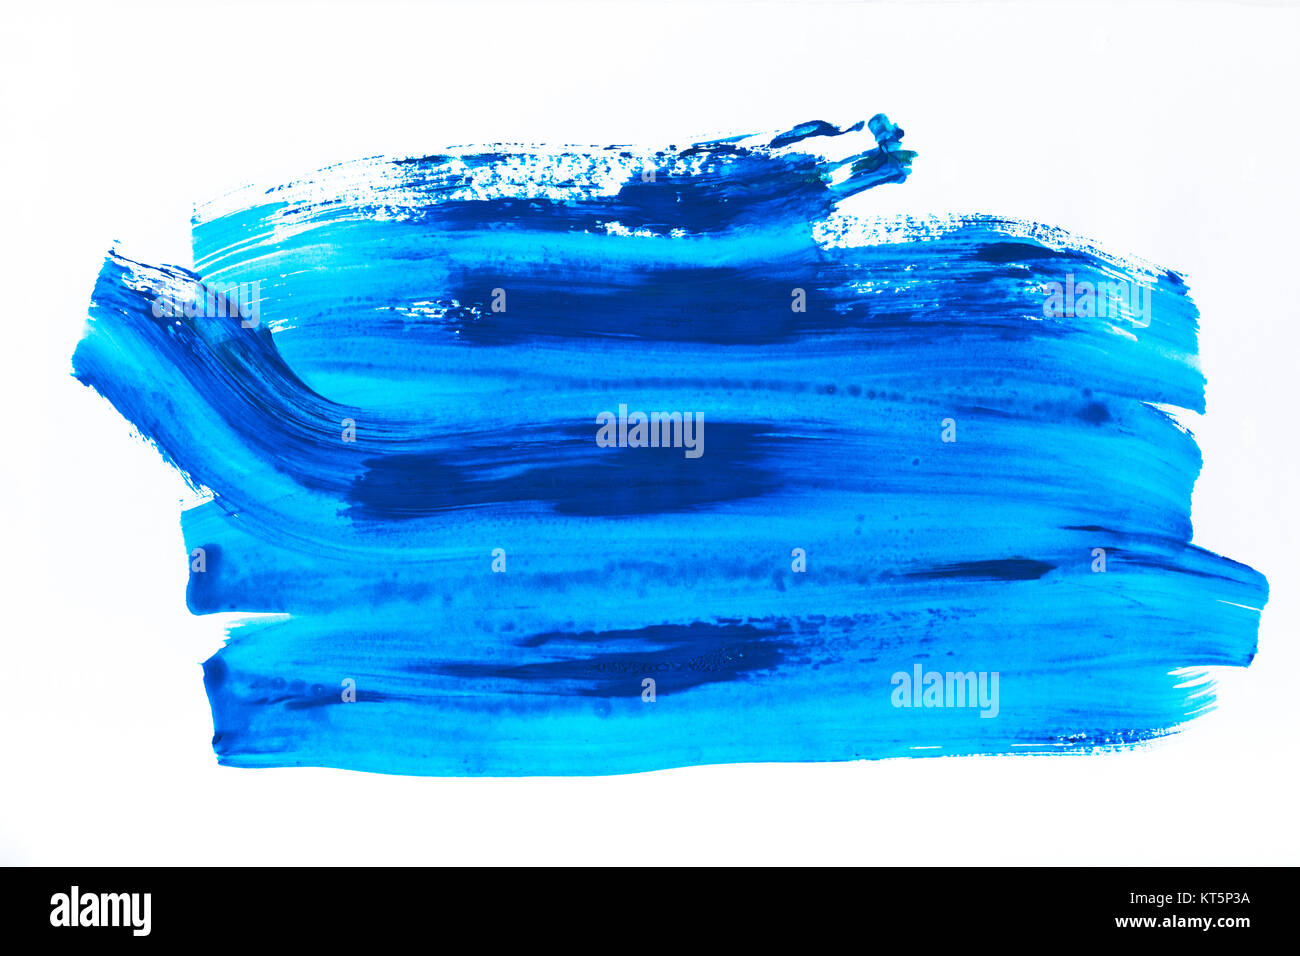 abstract painting with bright blue brush strokes on white   - Stock Image